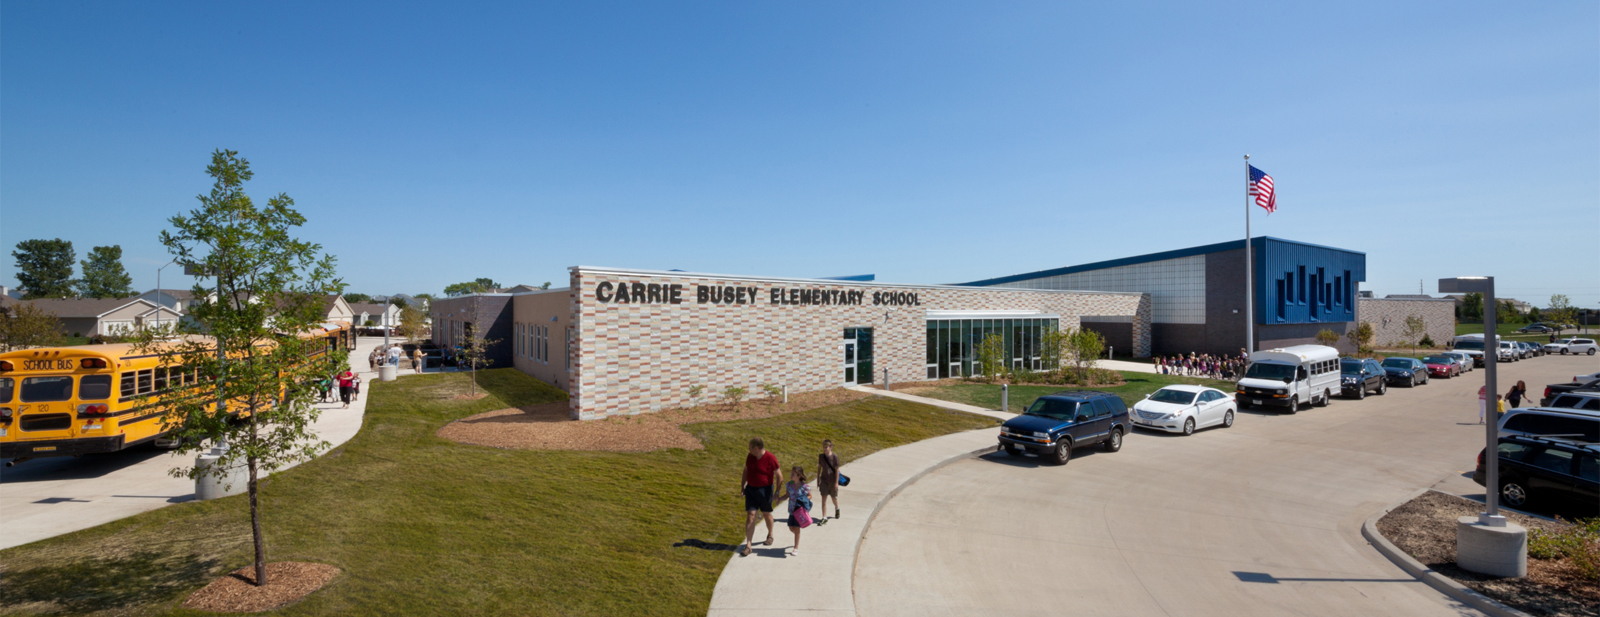 Carrie Busey Elementary School Savoy IL